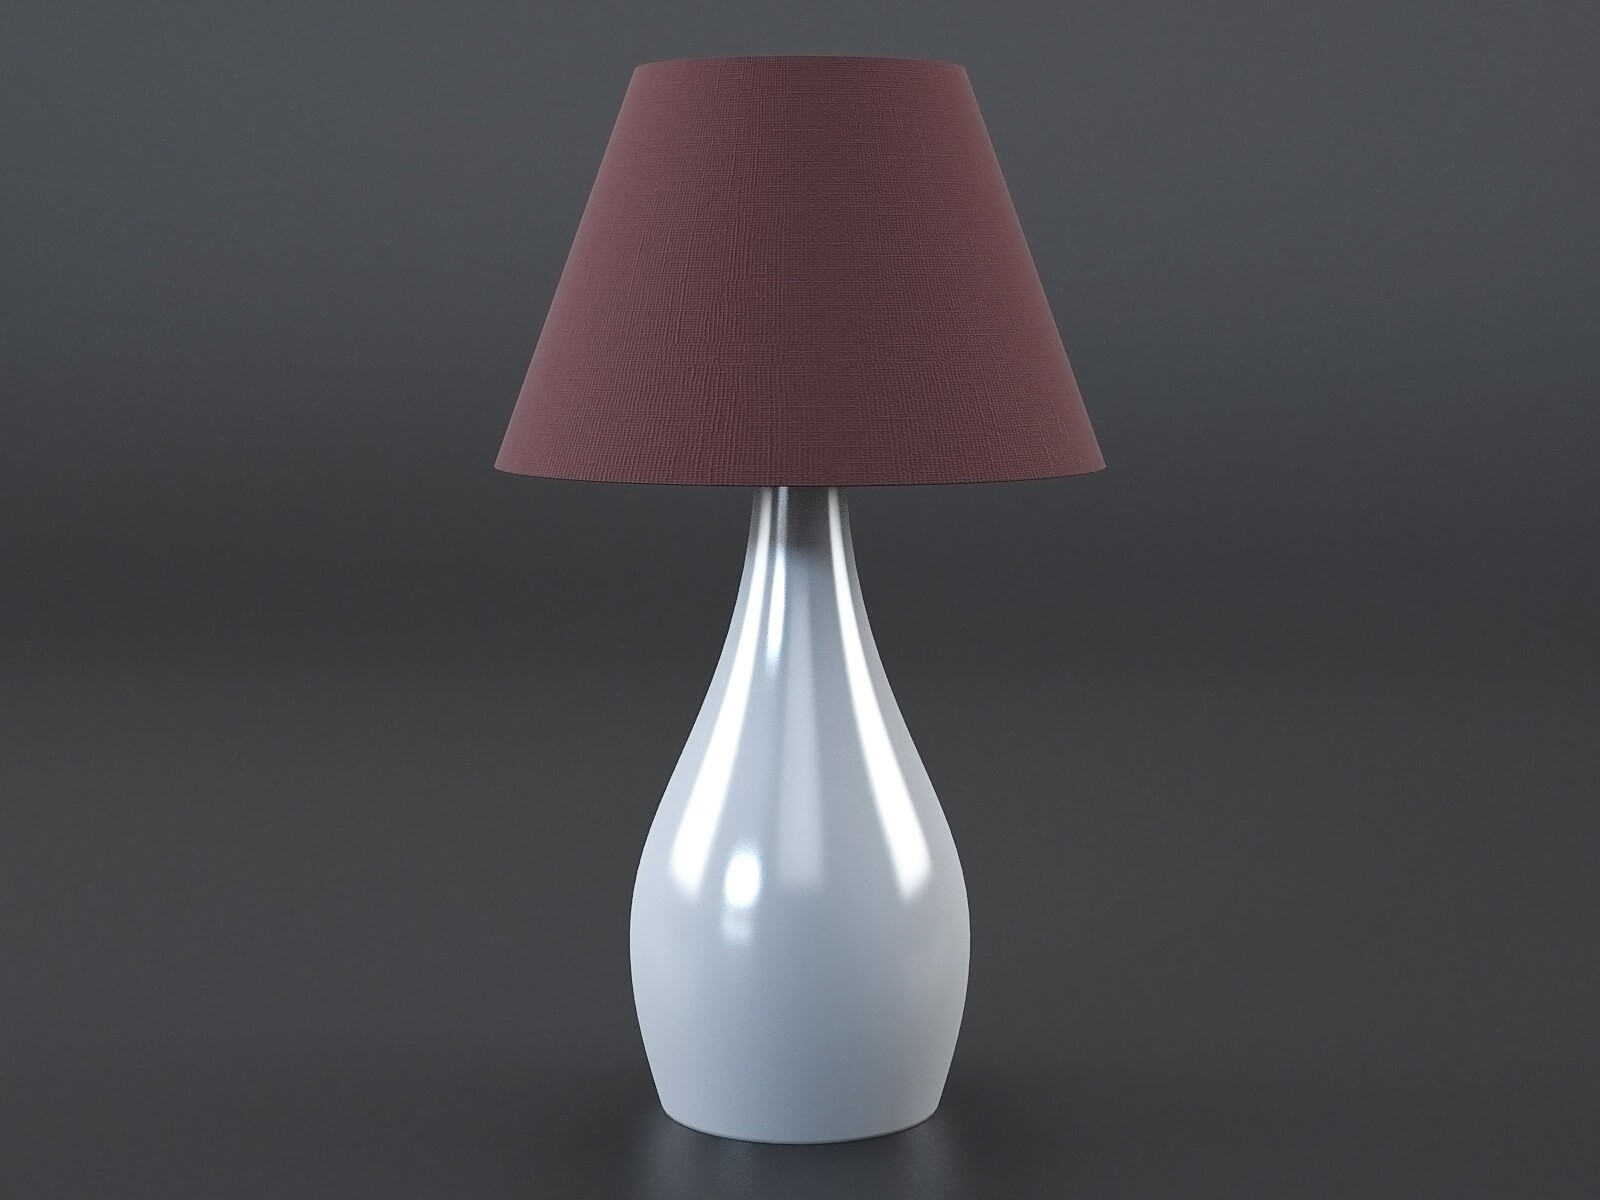 Lampe table rouge blanc